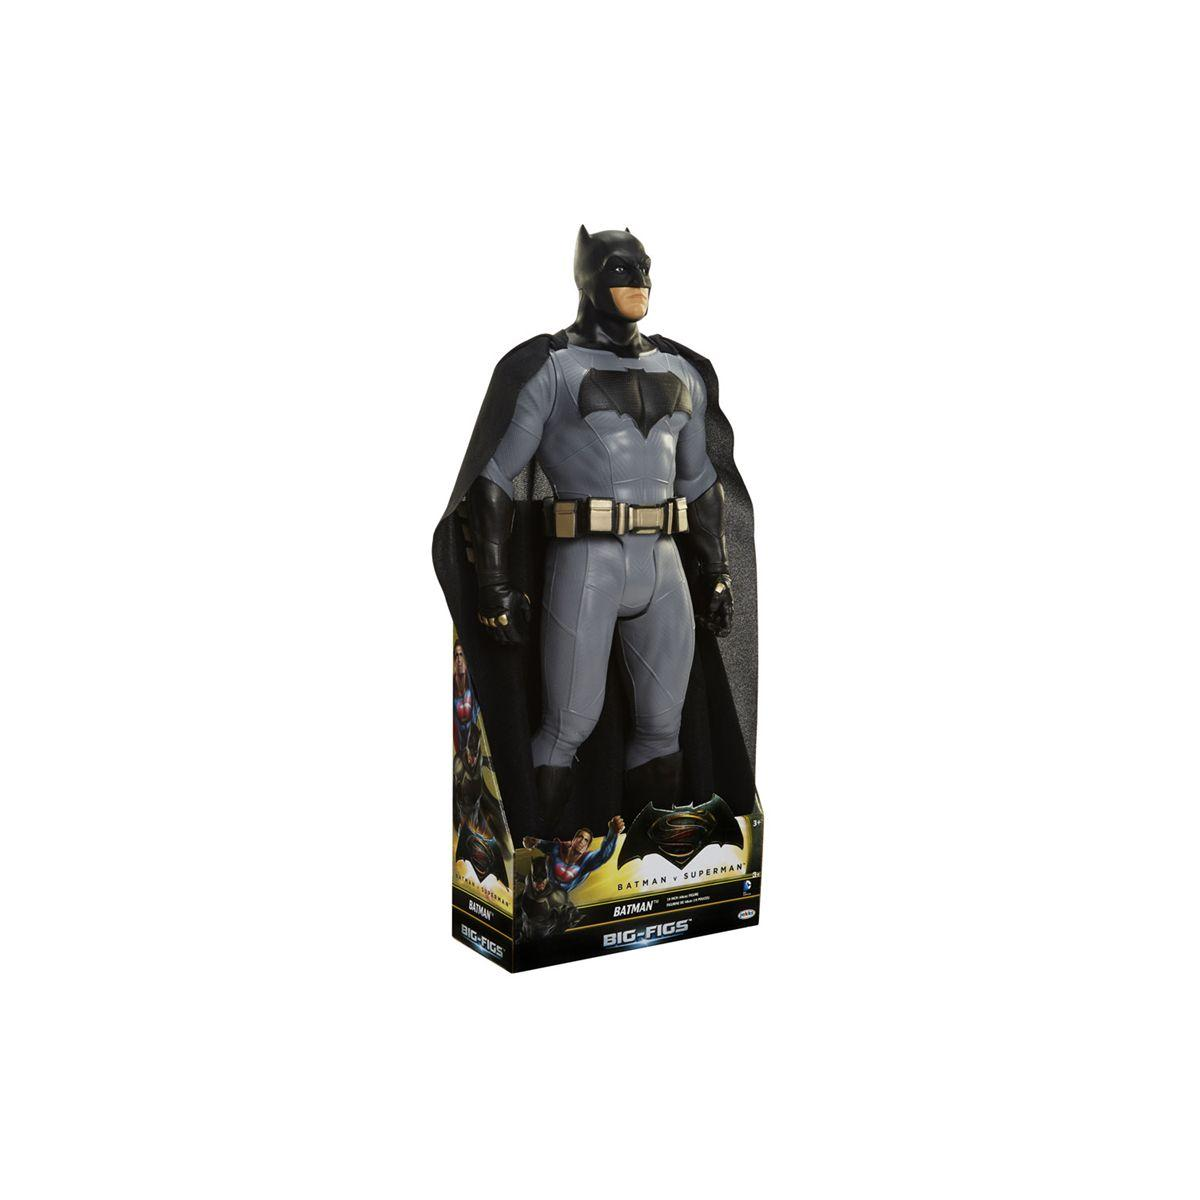 Figurine polymark batman 50cm (photo)